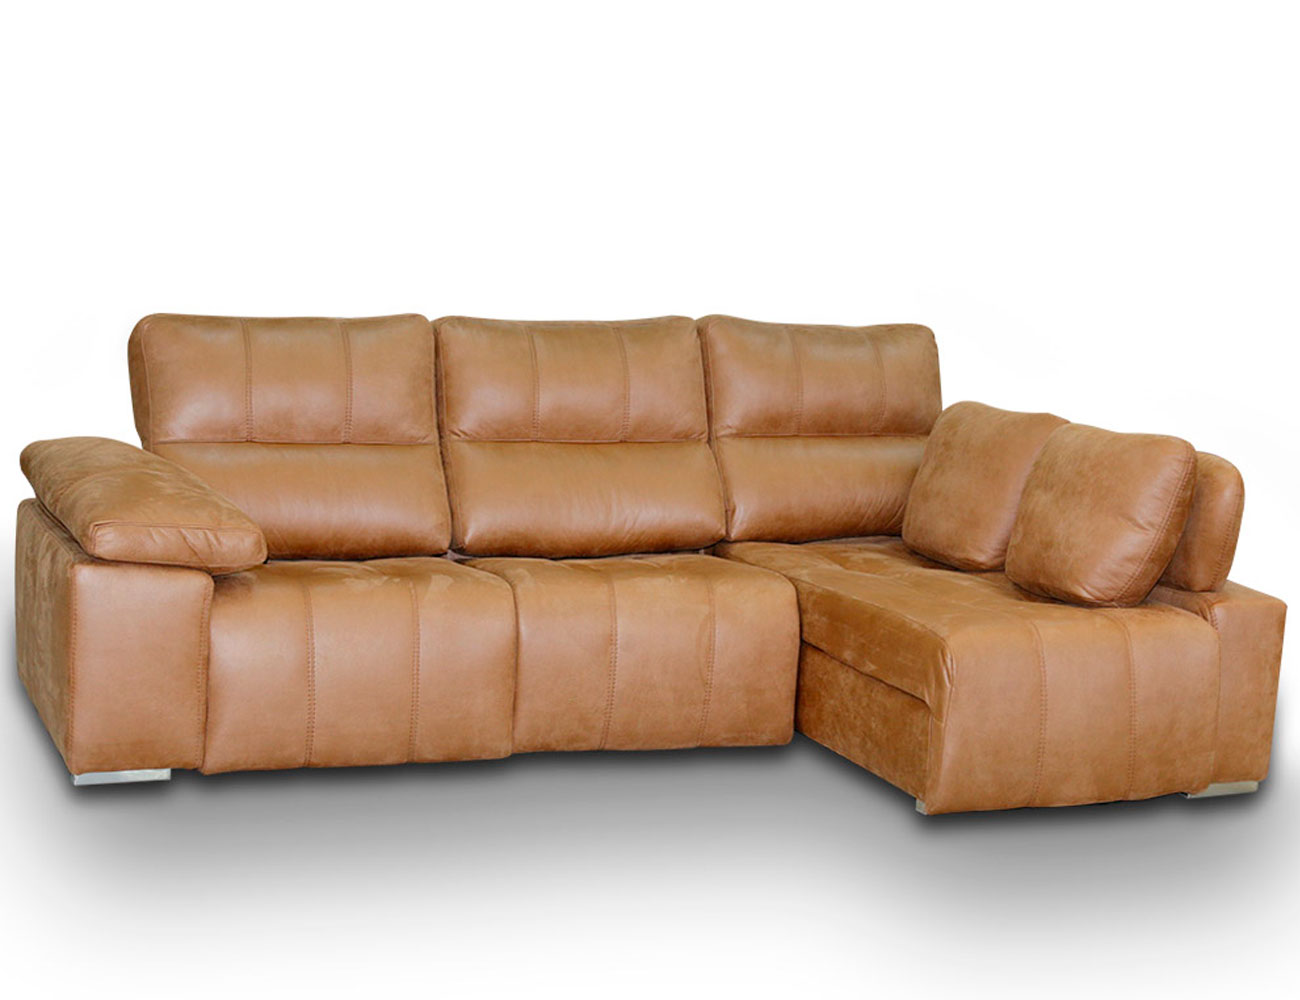 Sofa chaiselongue relax 2 motores anti manchas1